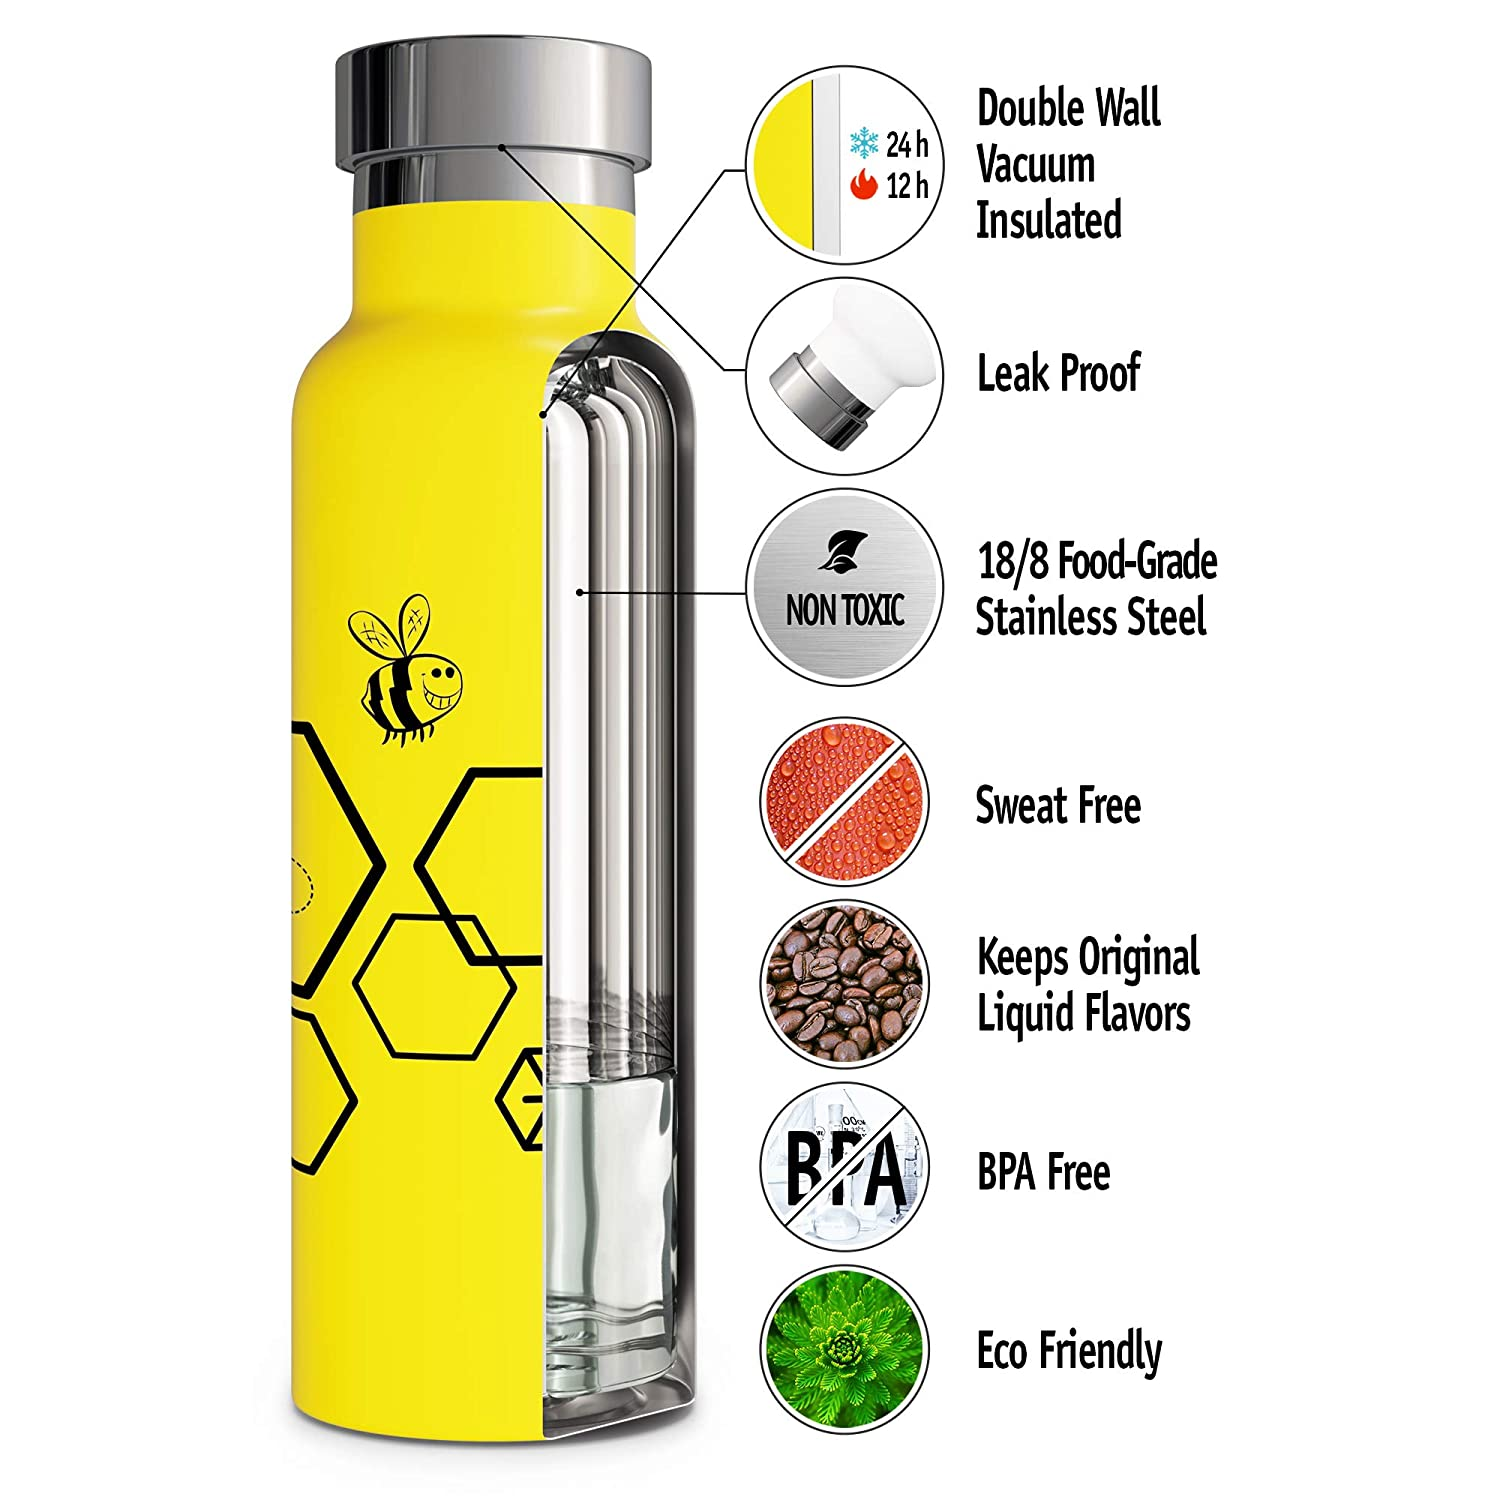 Keeps Cold 24 Hours Vacuum Insulated Water Bottle Double Walled Stainless Steel Eco-Friendly Leak Proof Sweat Free Durable Powder Coated 17oz // 20oz // 25oz Thermos Hot 12 Hours